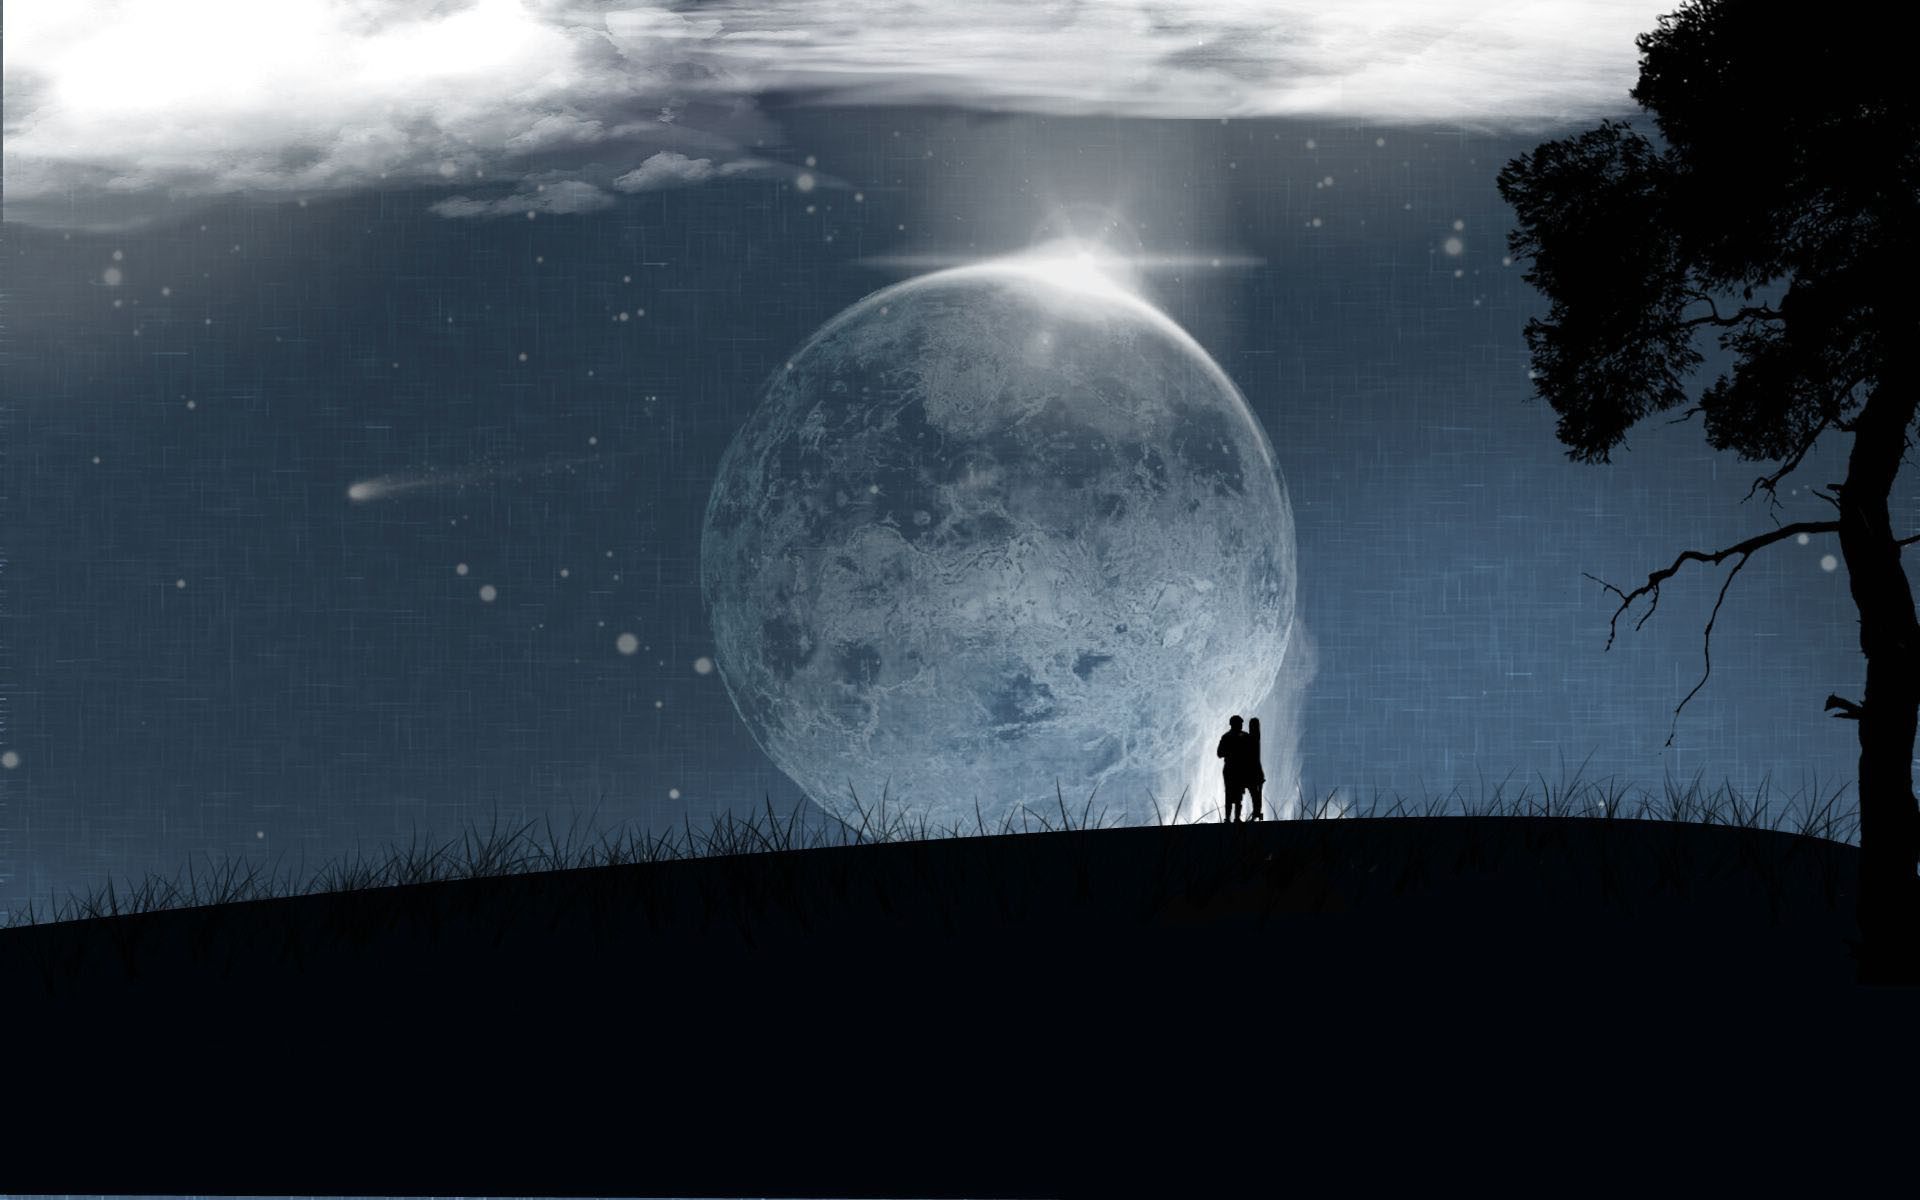 1920x1200 desktop-beautiful-full-moon-images-dowload-free-hd-